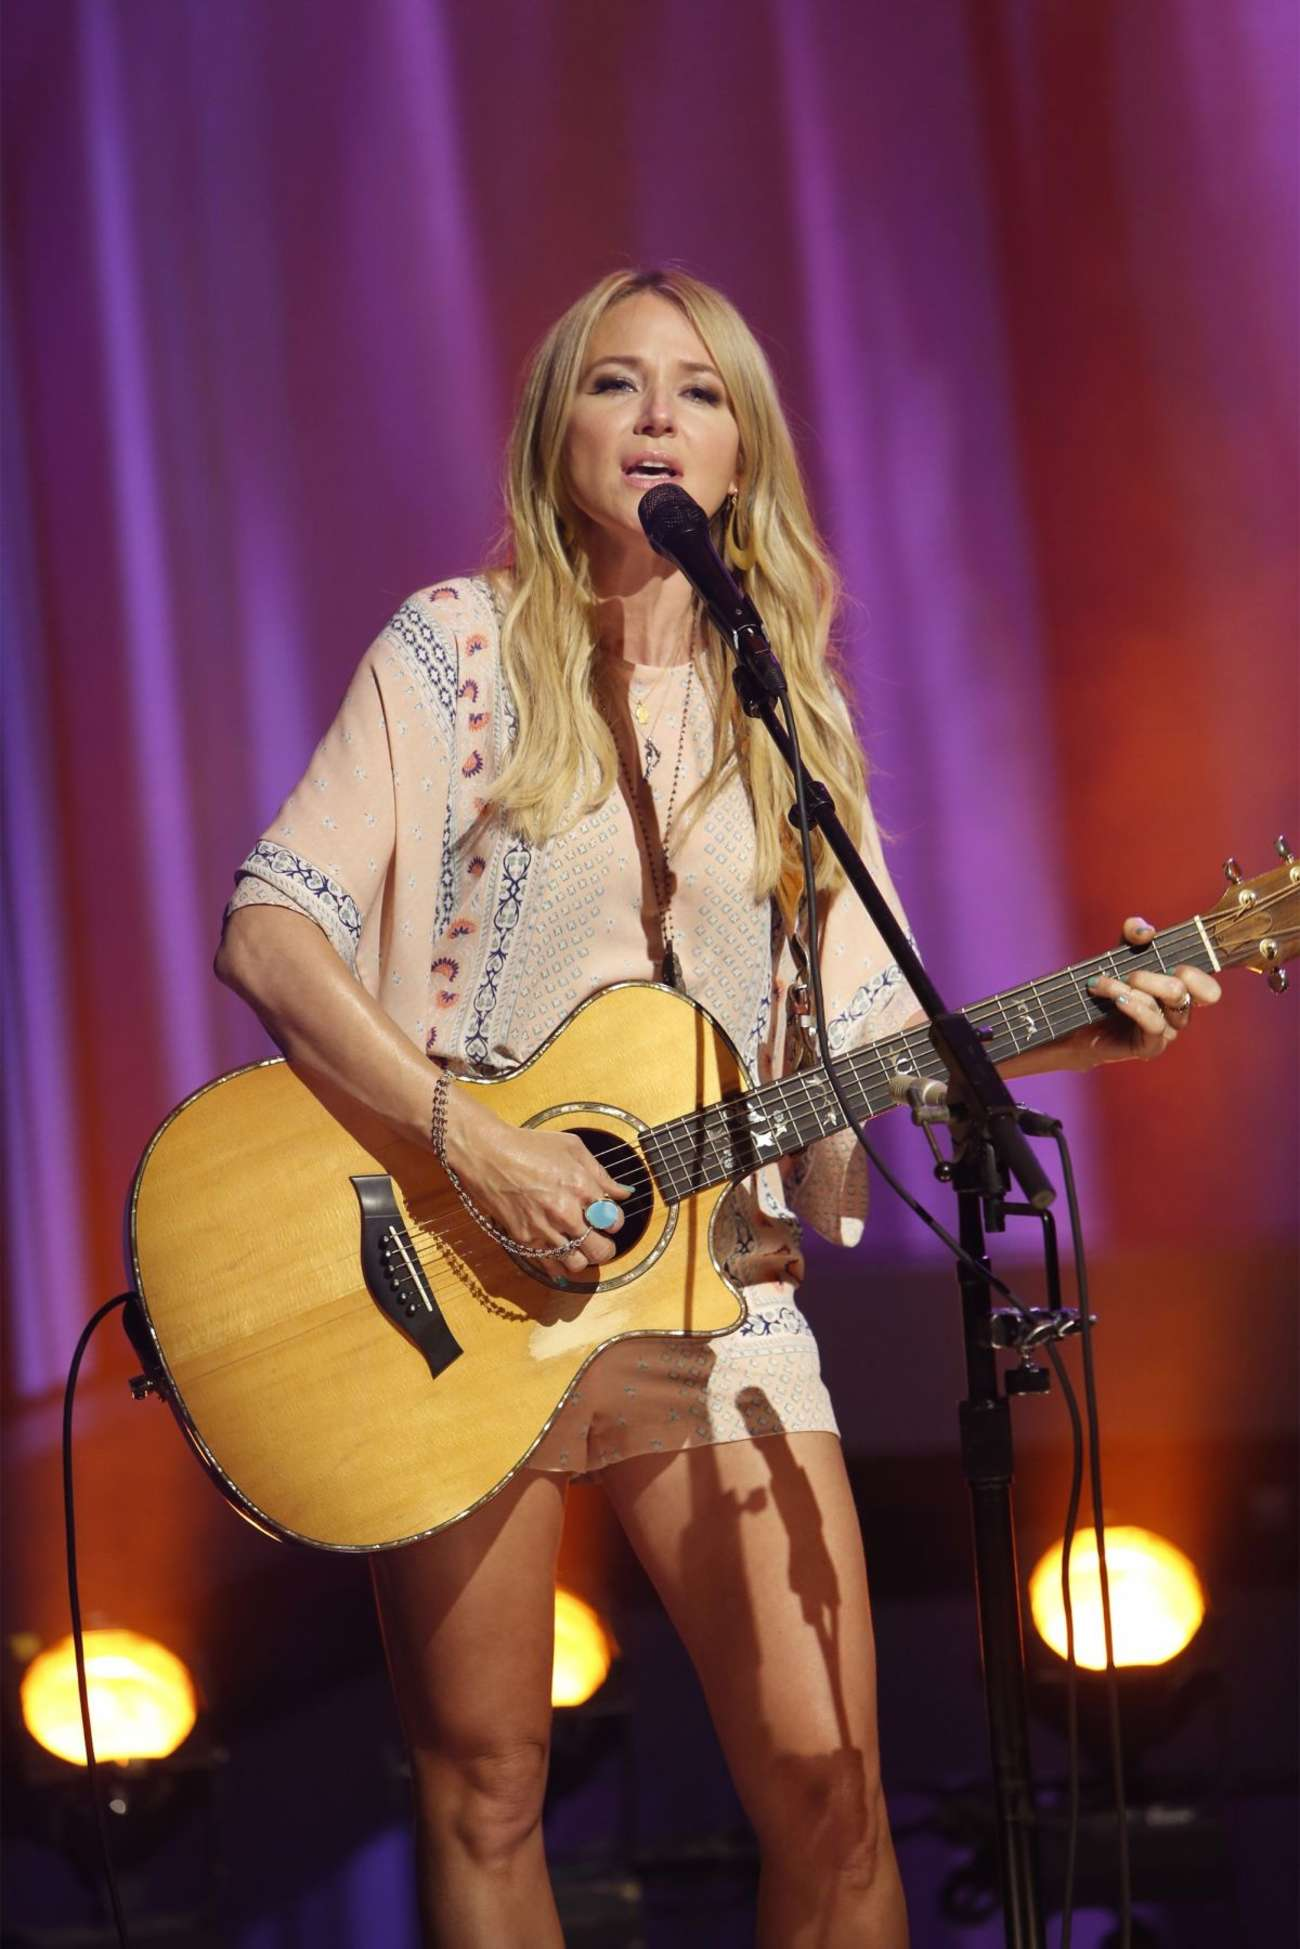 Jewel Kilcher Performs at Jimmy Kimmel Live in Hollywood